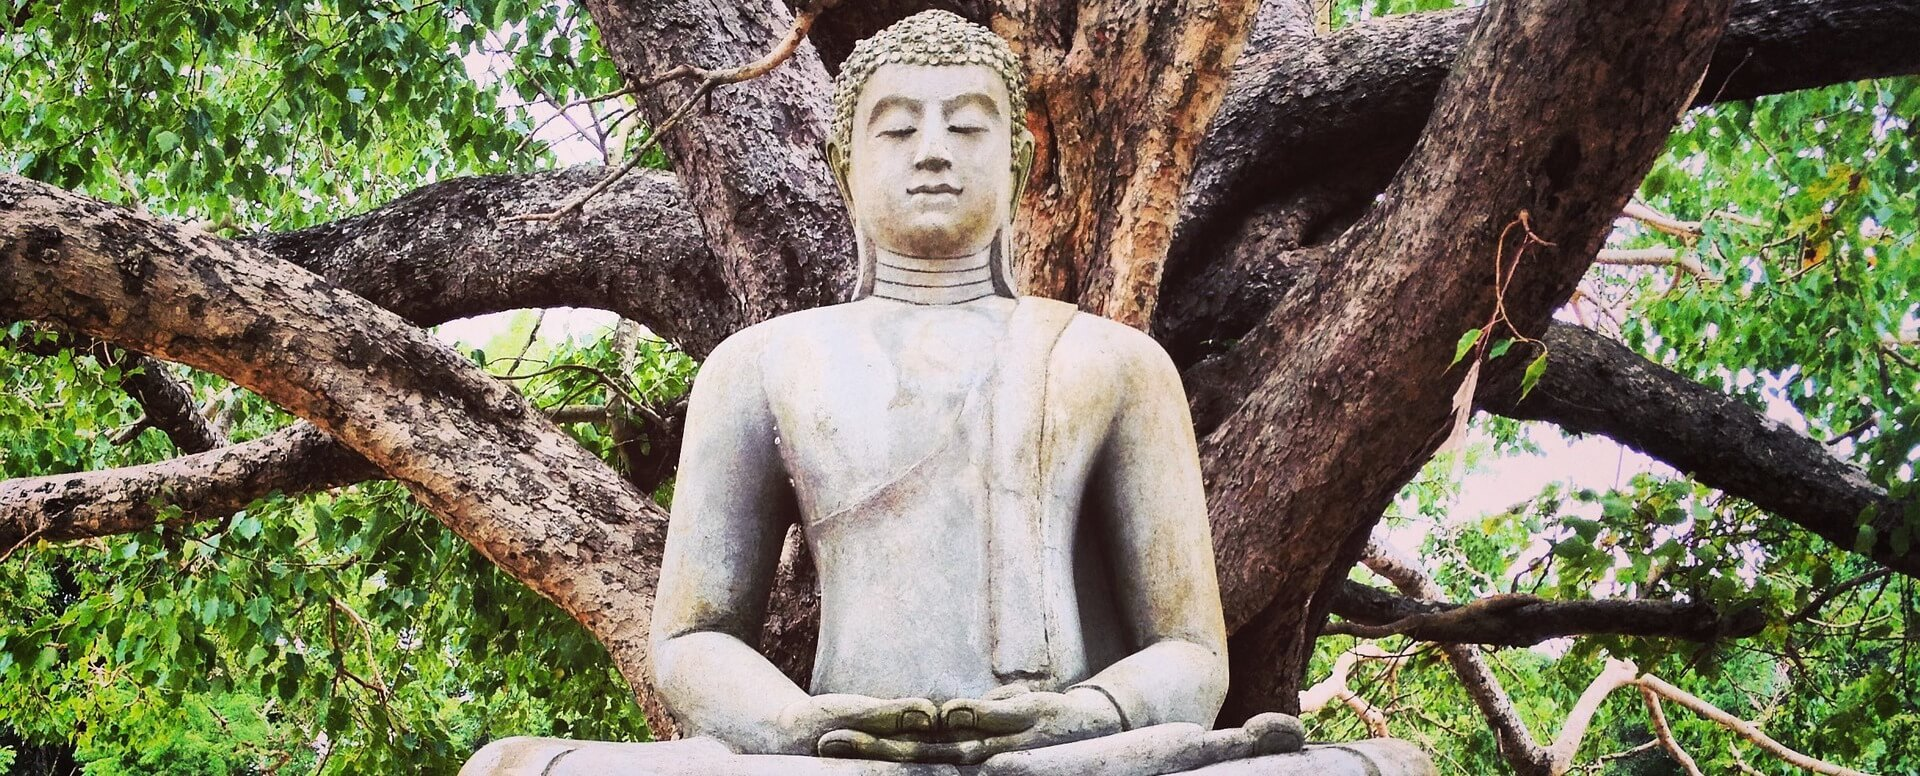 2. Discover Landy and the Temple of the Buddha's Tooth - Sri Lanka